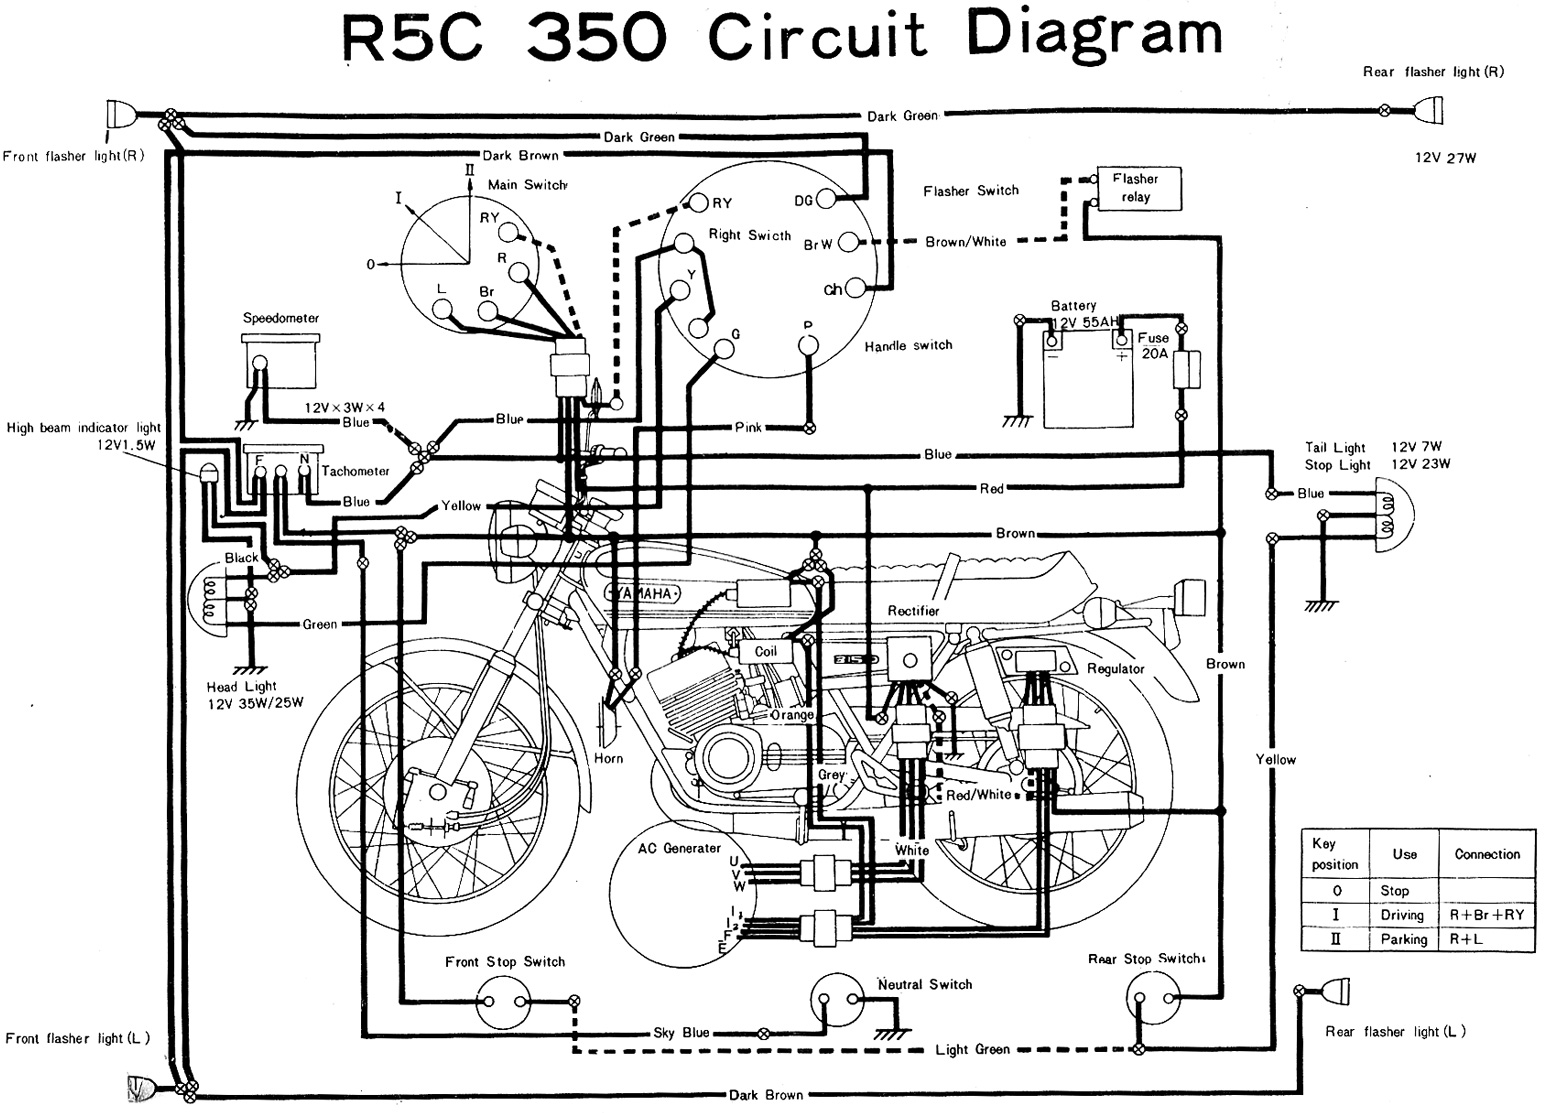 Yamaha R5C 350 Electrical Wiring Diagram1 motorcycle wiring diagrams basic ac wiring diagrams at n-0.co